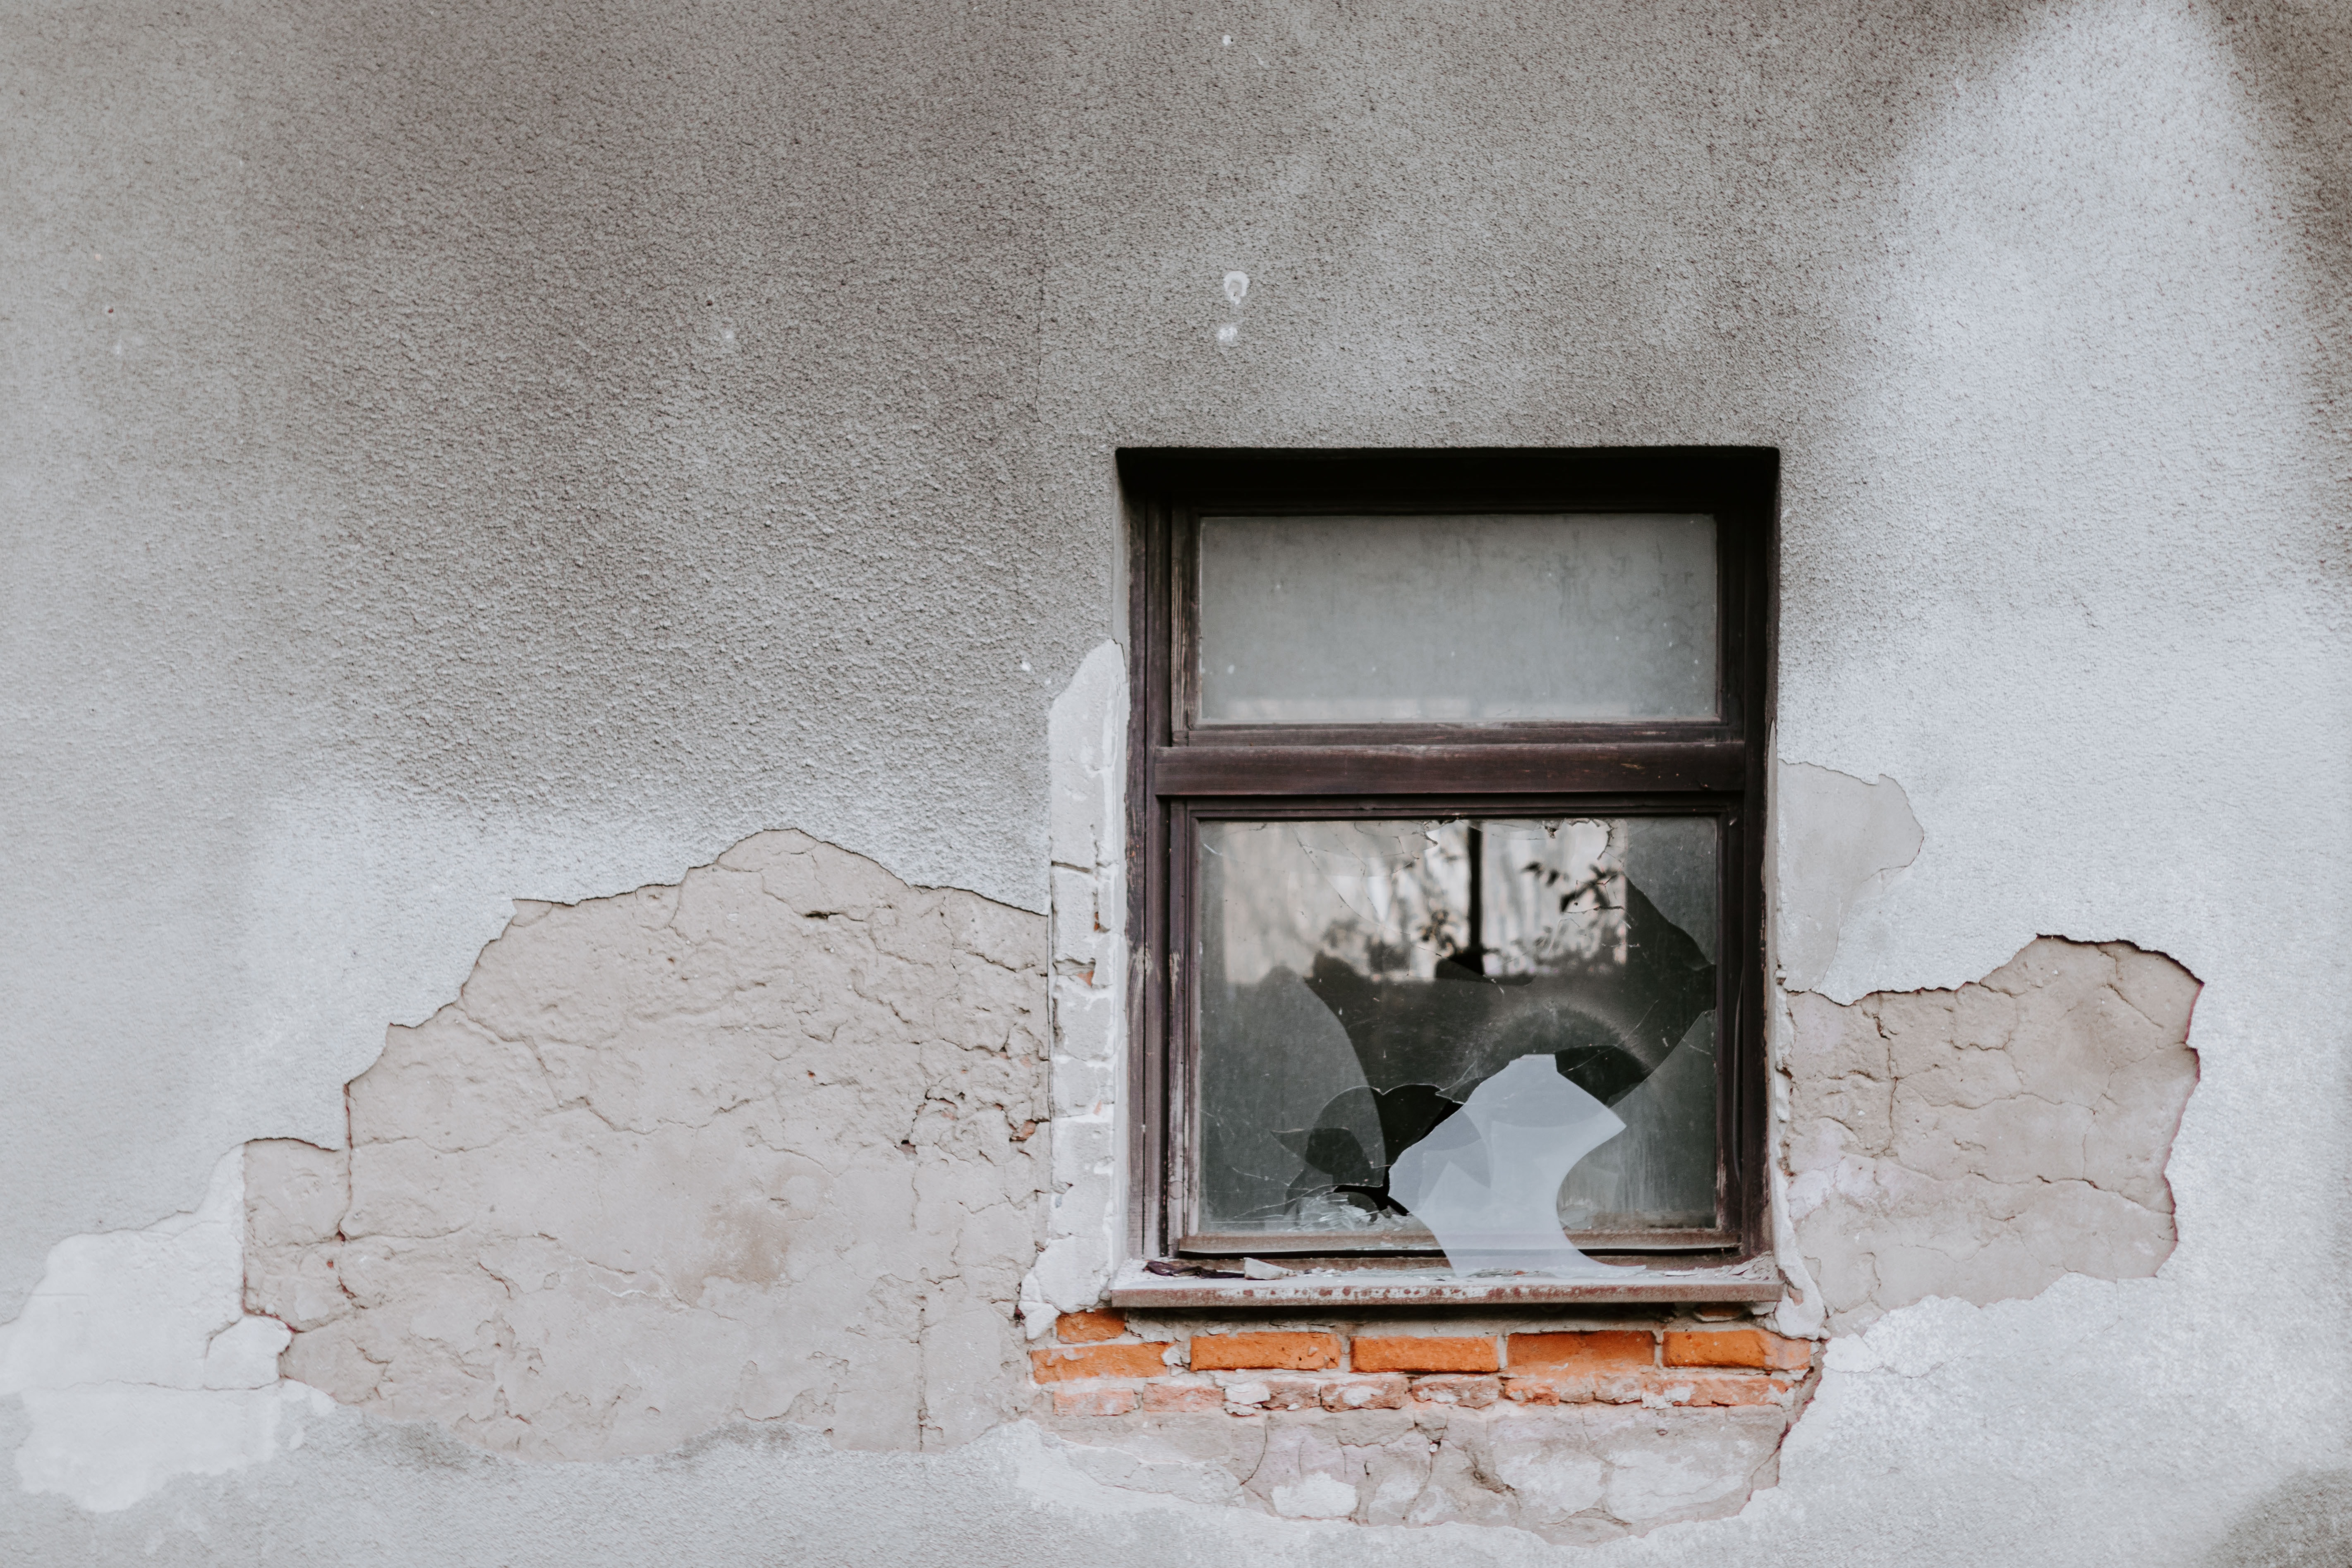 Picture of a broken window set in a cracked and broken wall